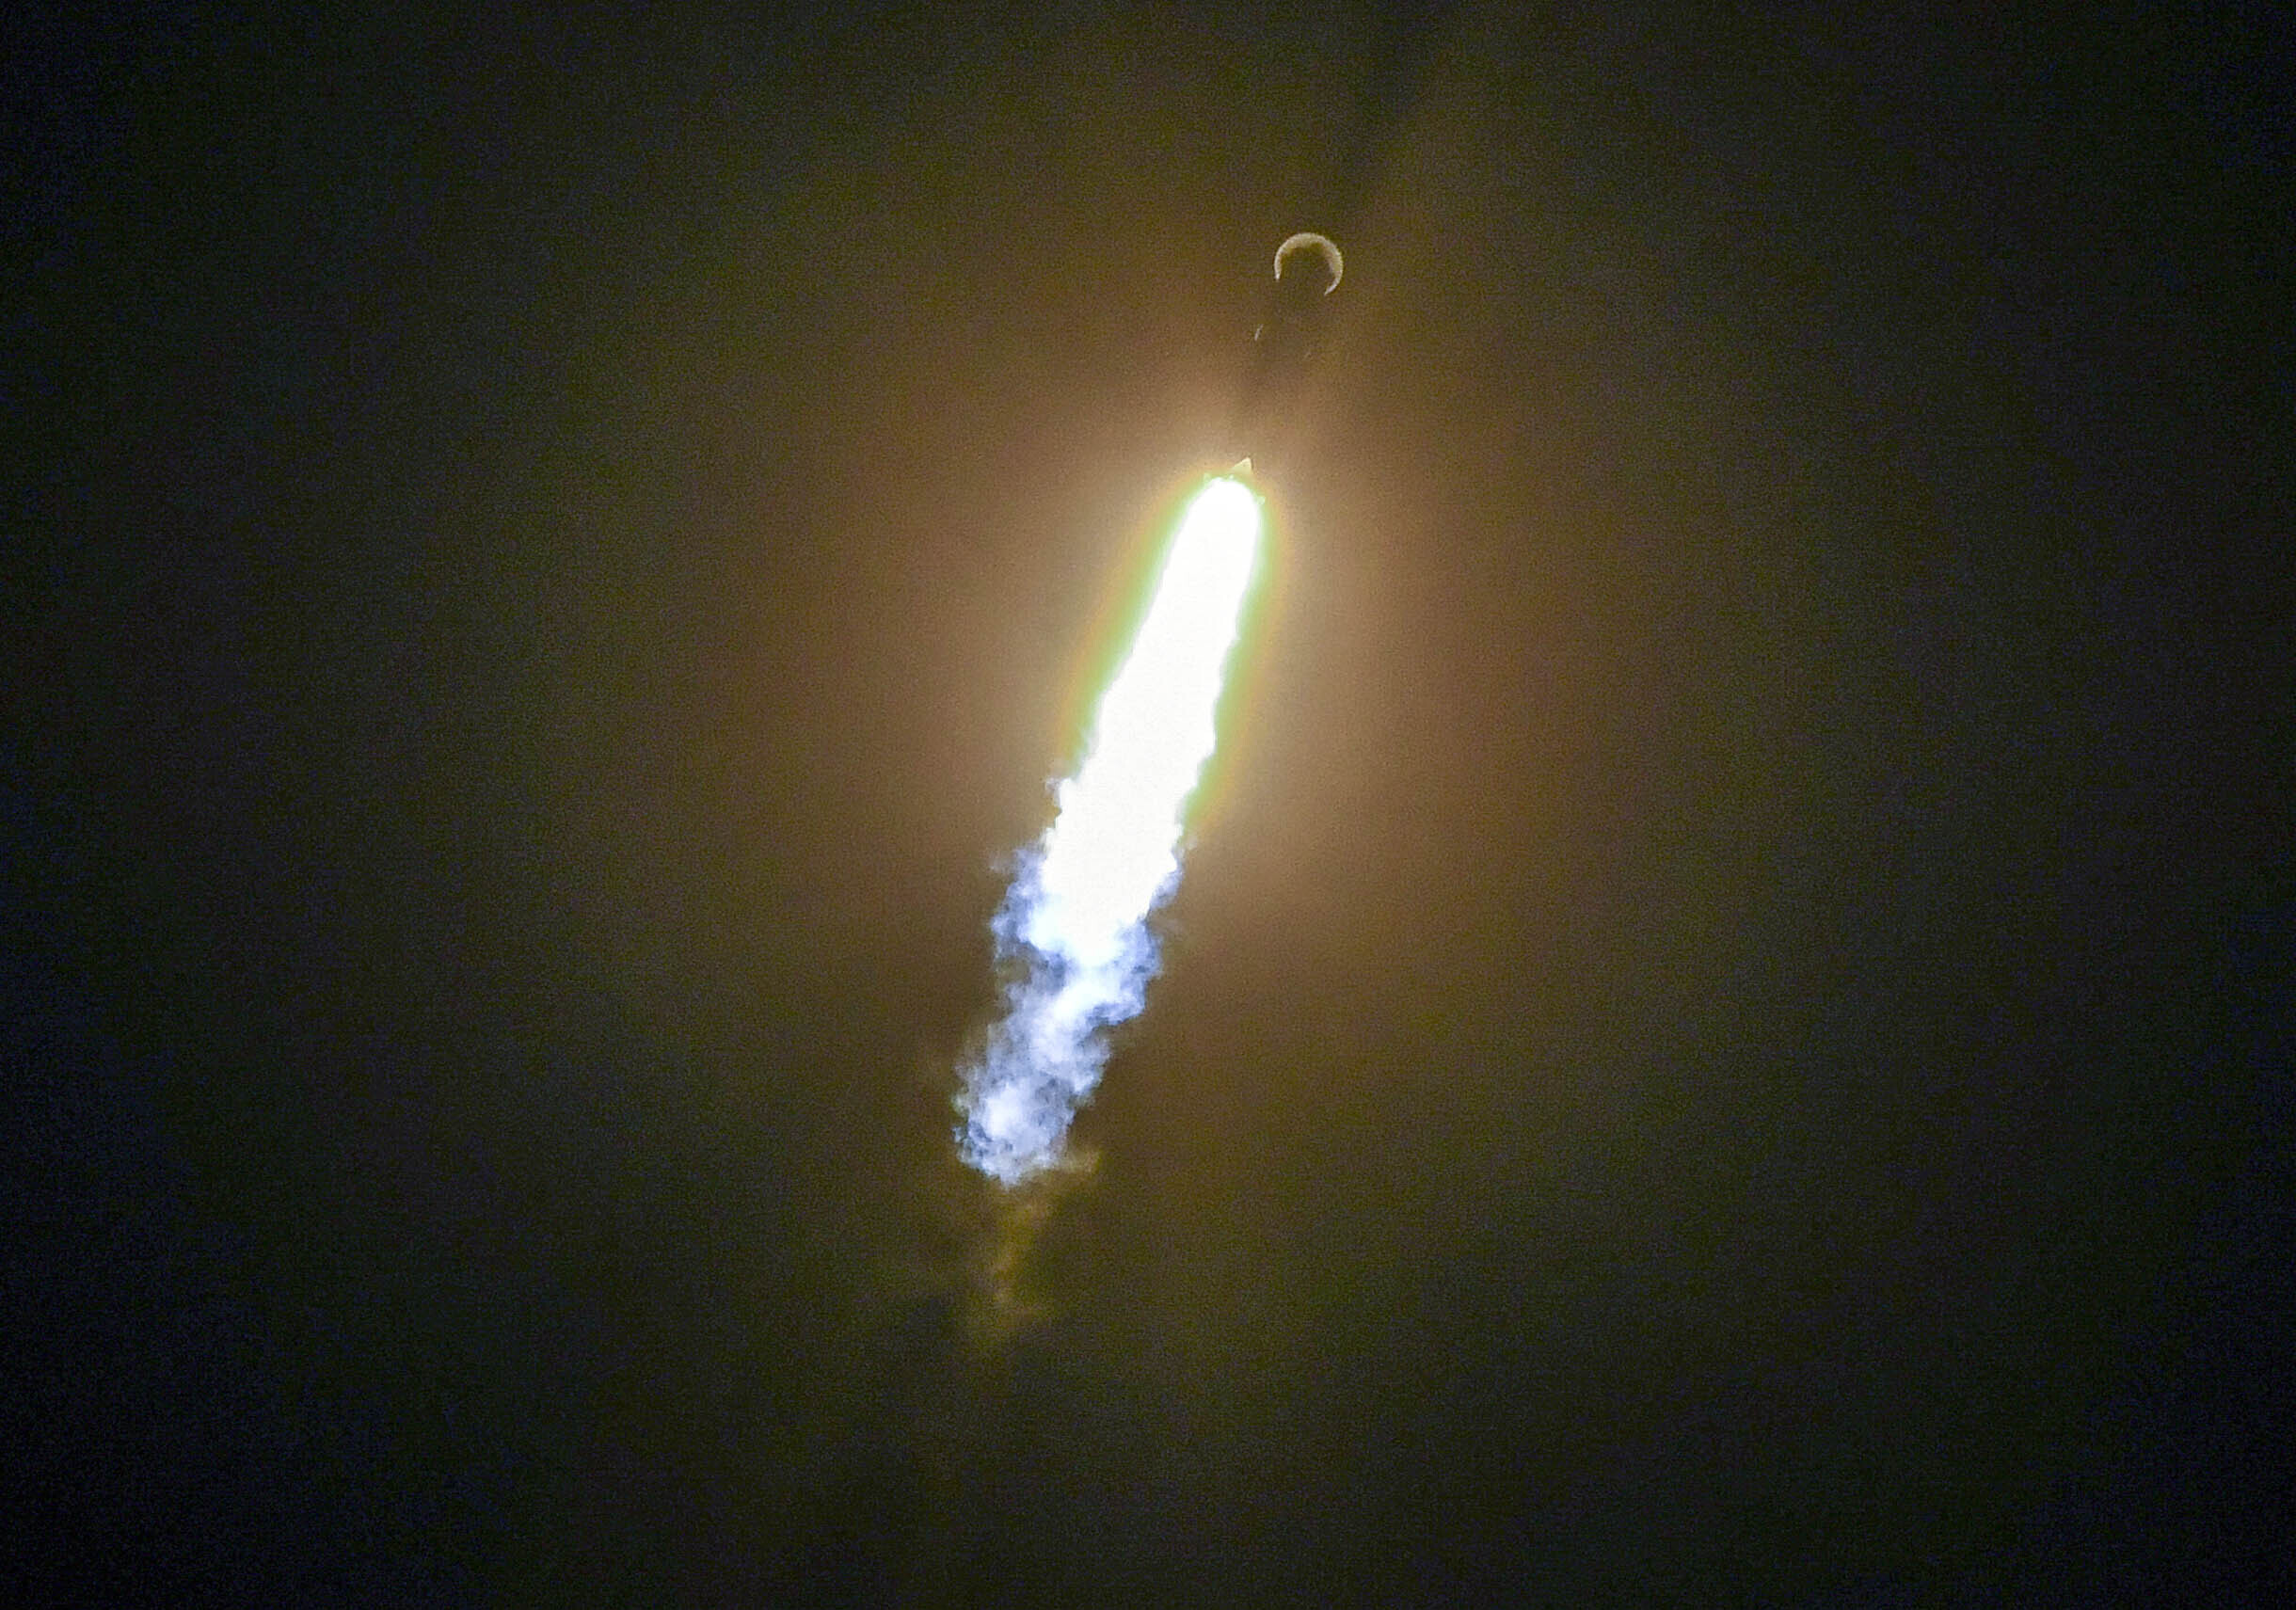 A SpaceX Falcon 9 rocket lifts off from Cape Canaveral Air Force Station, Florida